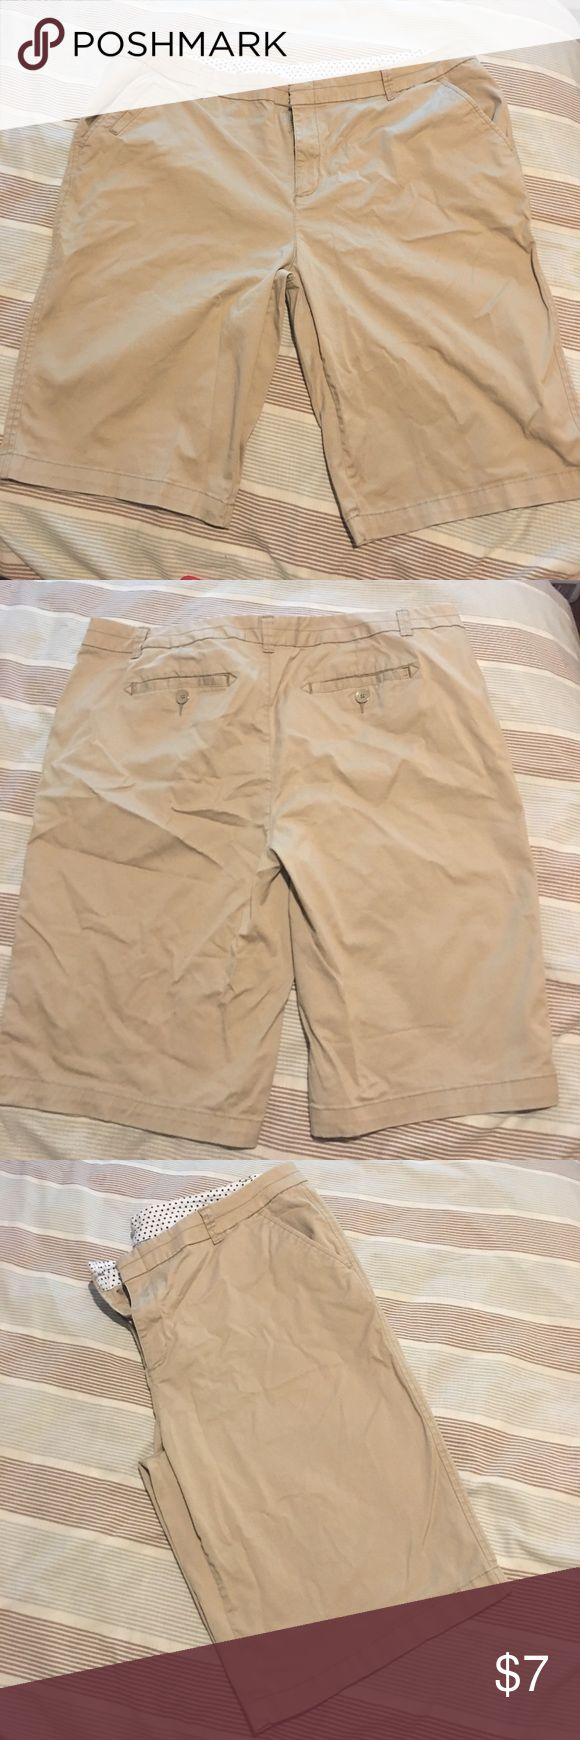 "JCP Women's Bermuda Shorts Beige Size 18W Preowned really good condition, little fade, Bermuda shorts by JCP. They are a beige color, 5 pockets, size 18W, and belt loops. Measurements are approximate and laying flat. Waist- 20"" (40"") Rise-11"" Inseam-11 1/2"" Length- from top to bottom- 23"". Please read description, comments, see pictures and ask questions before purchase. Check out my other items, bundle and save! jcpenney Shorts Bermudas"